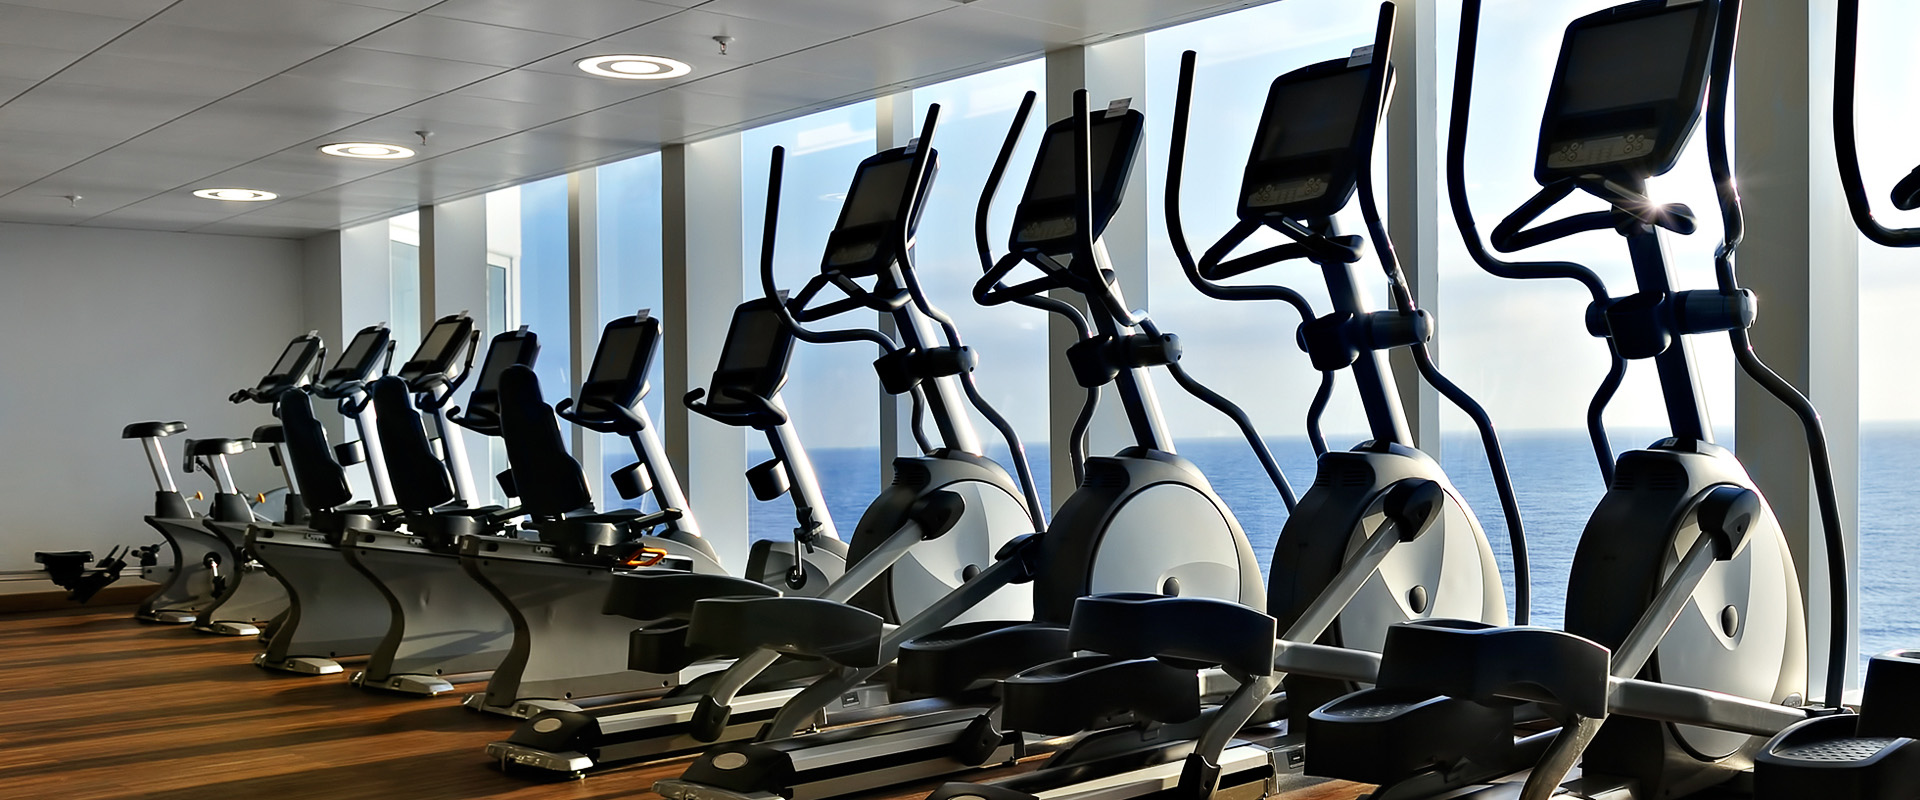 Why You Don't Need A Lot of Expensive Exercise Equipment For a Great Workout?